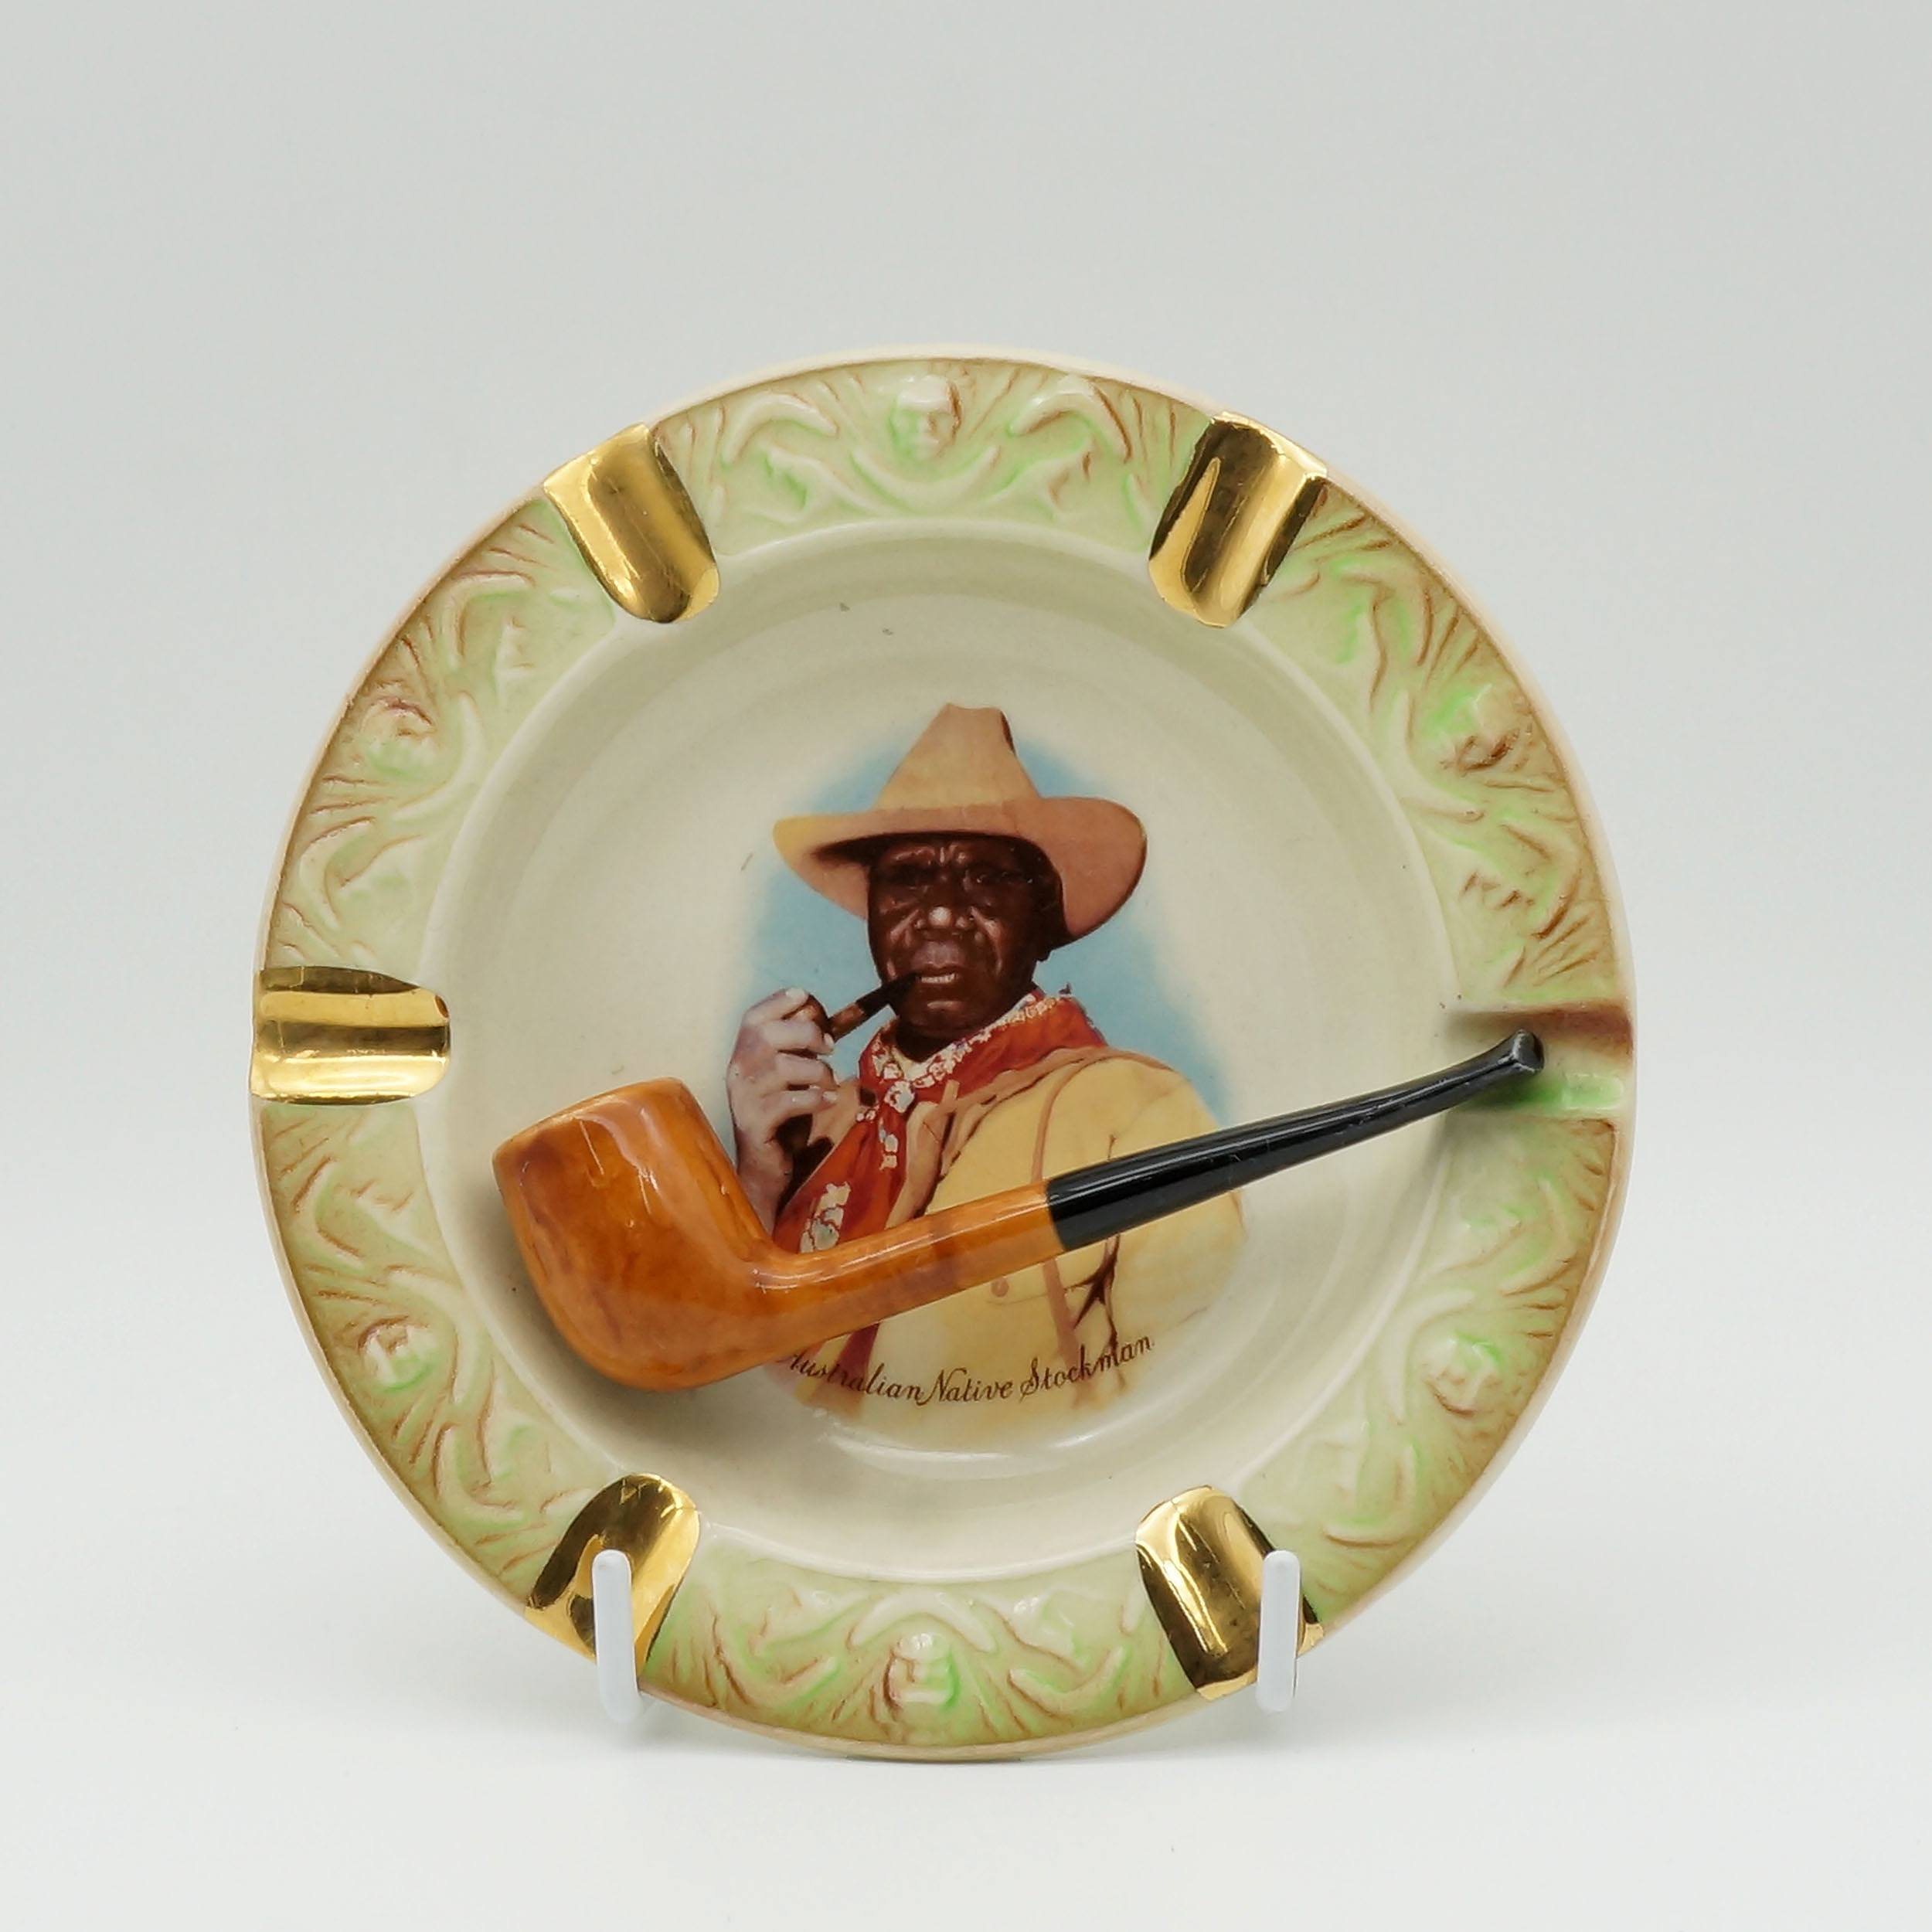 'Australian Wembley Ware Albert Namatjira Ashtray with Pipe'